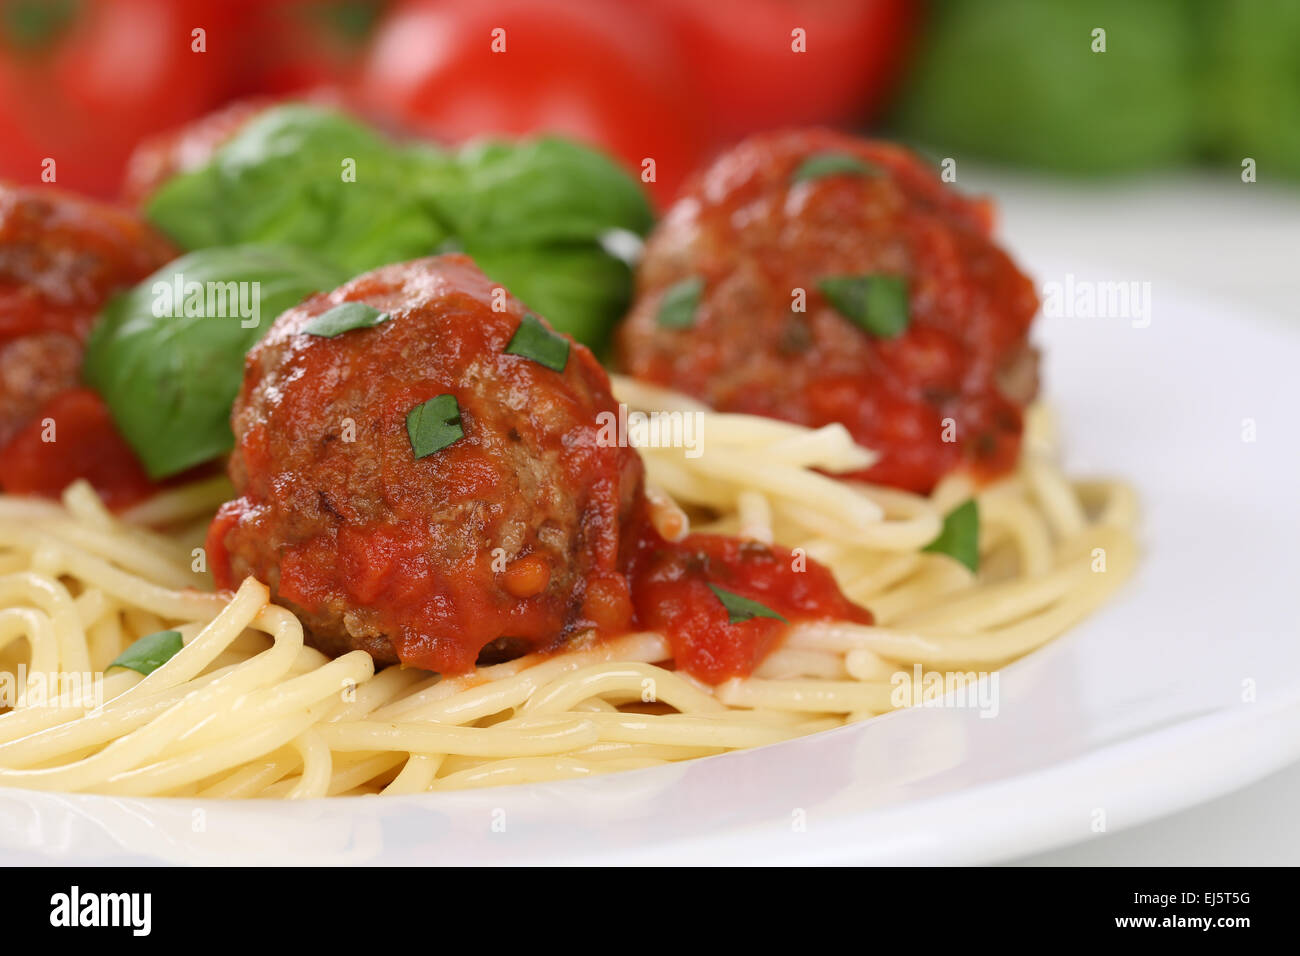 Spaghetti with meatballs noodles pasta meal on a plate - Stock Image